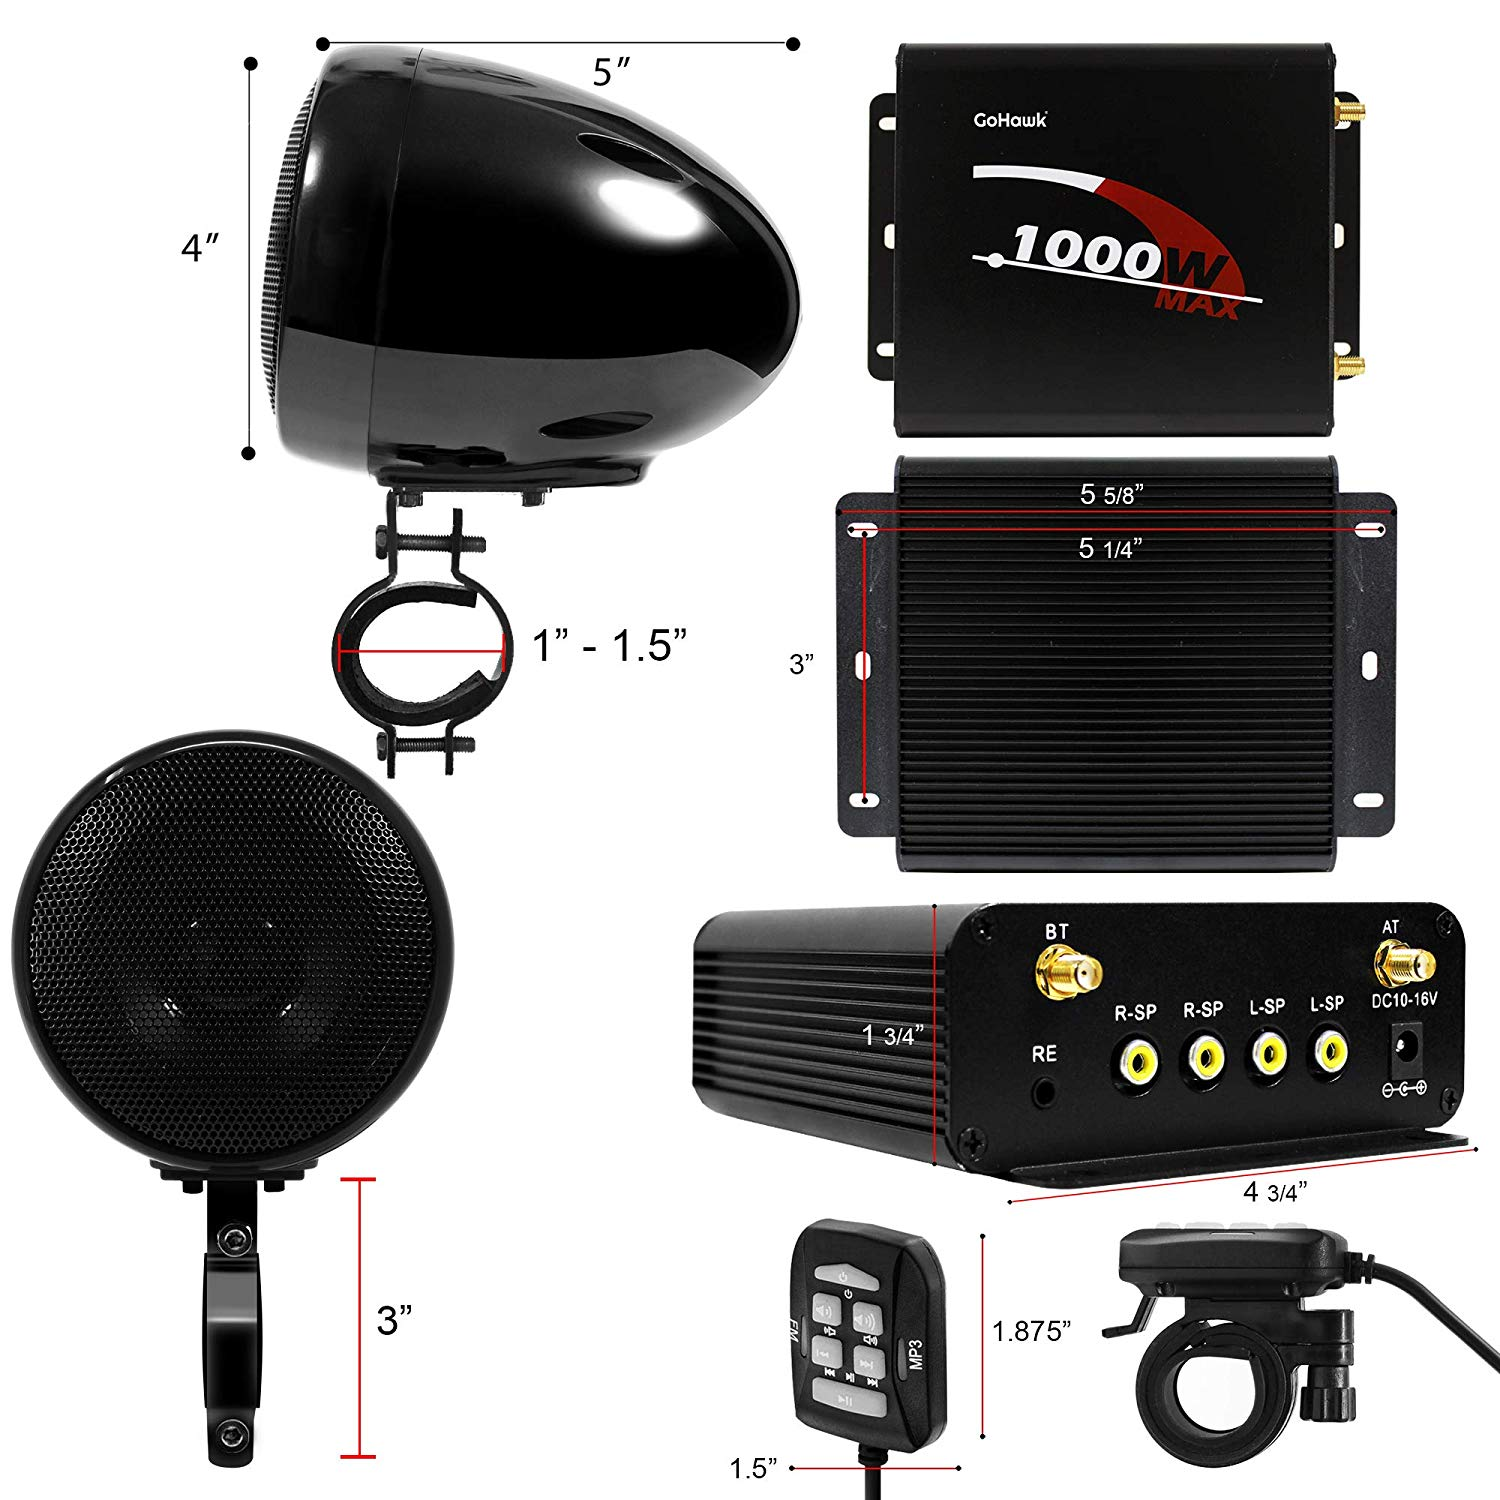 Image 4 - Aileap 1000W Motorcycle Audio 4 Channel Amplifier Speakers System, Support Bluetooth, AUX, FM Radio, SD Card, USB Stick (Black)Motorcycle Audio   -